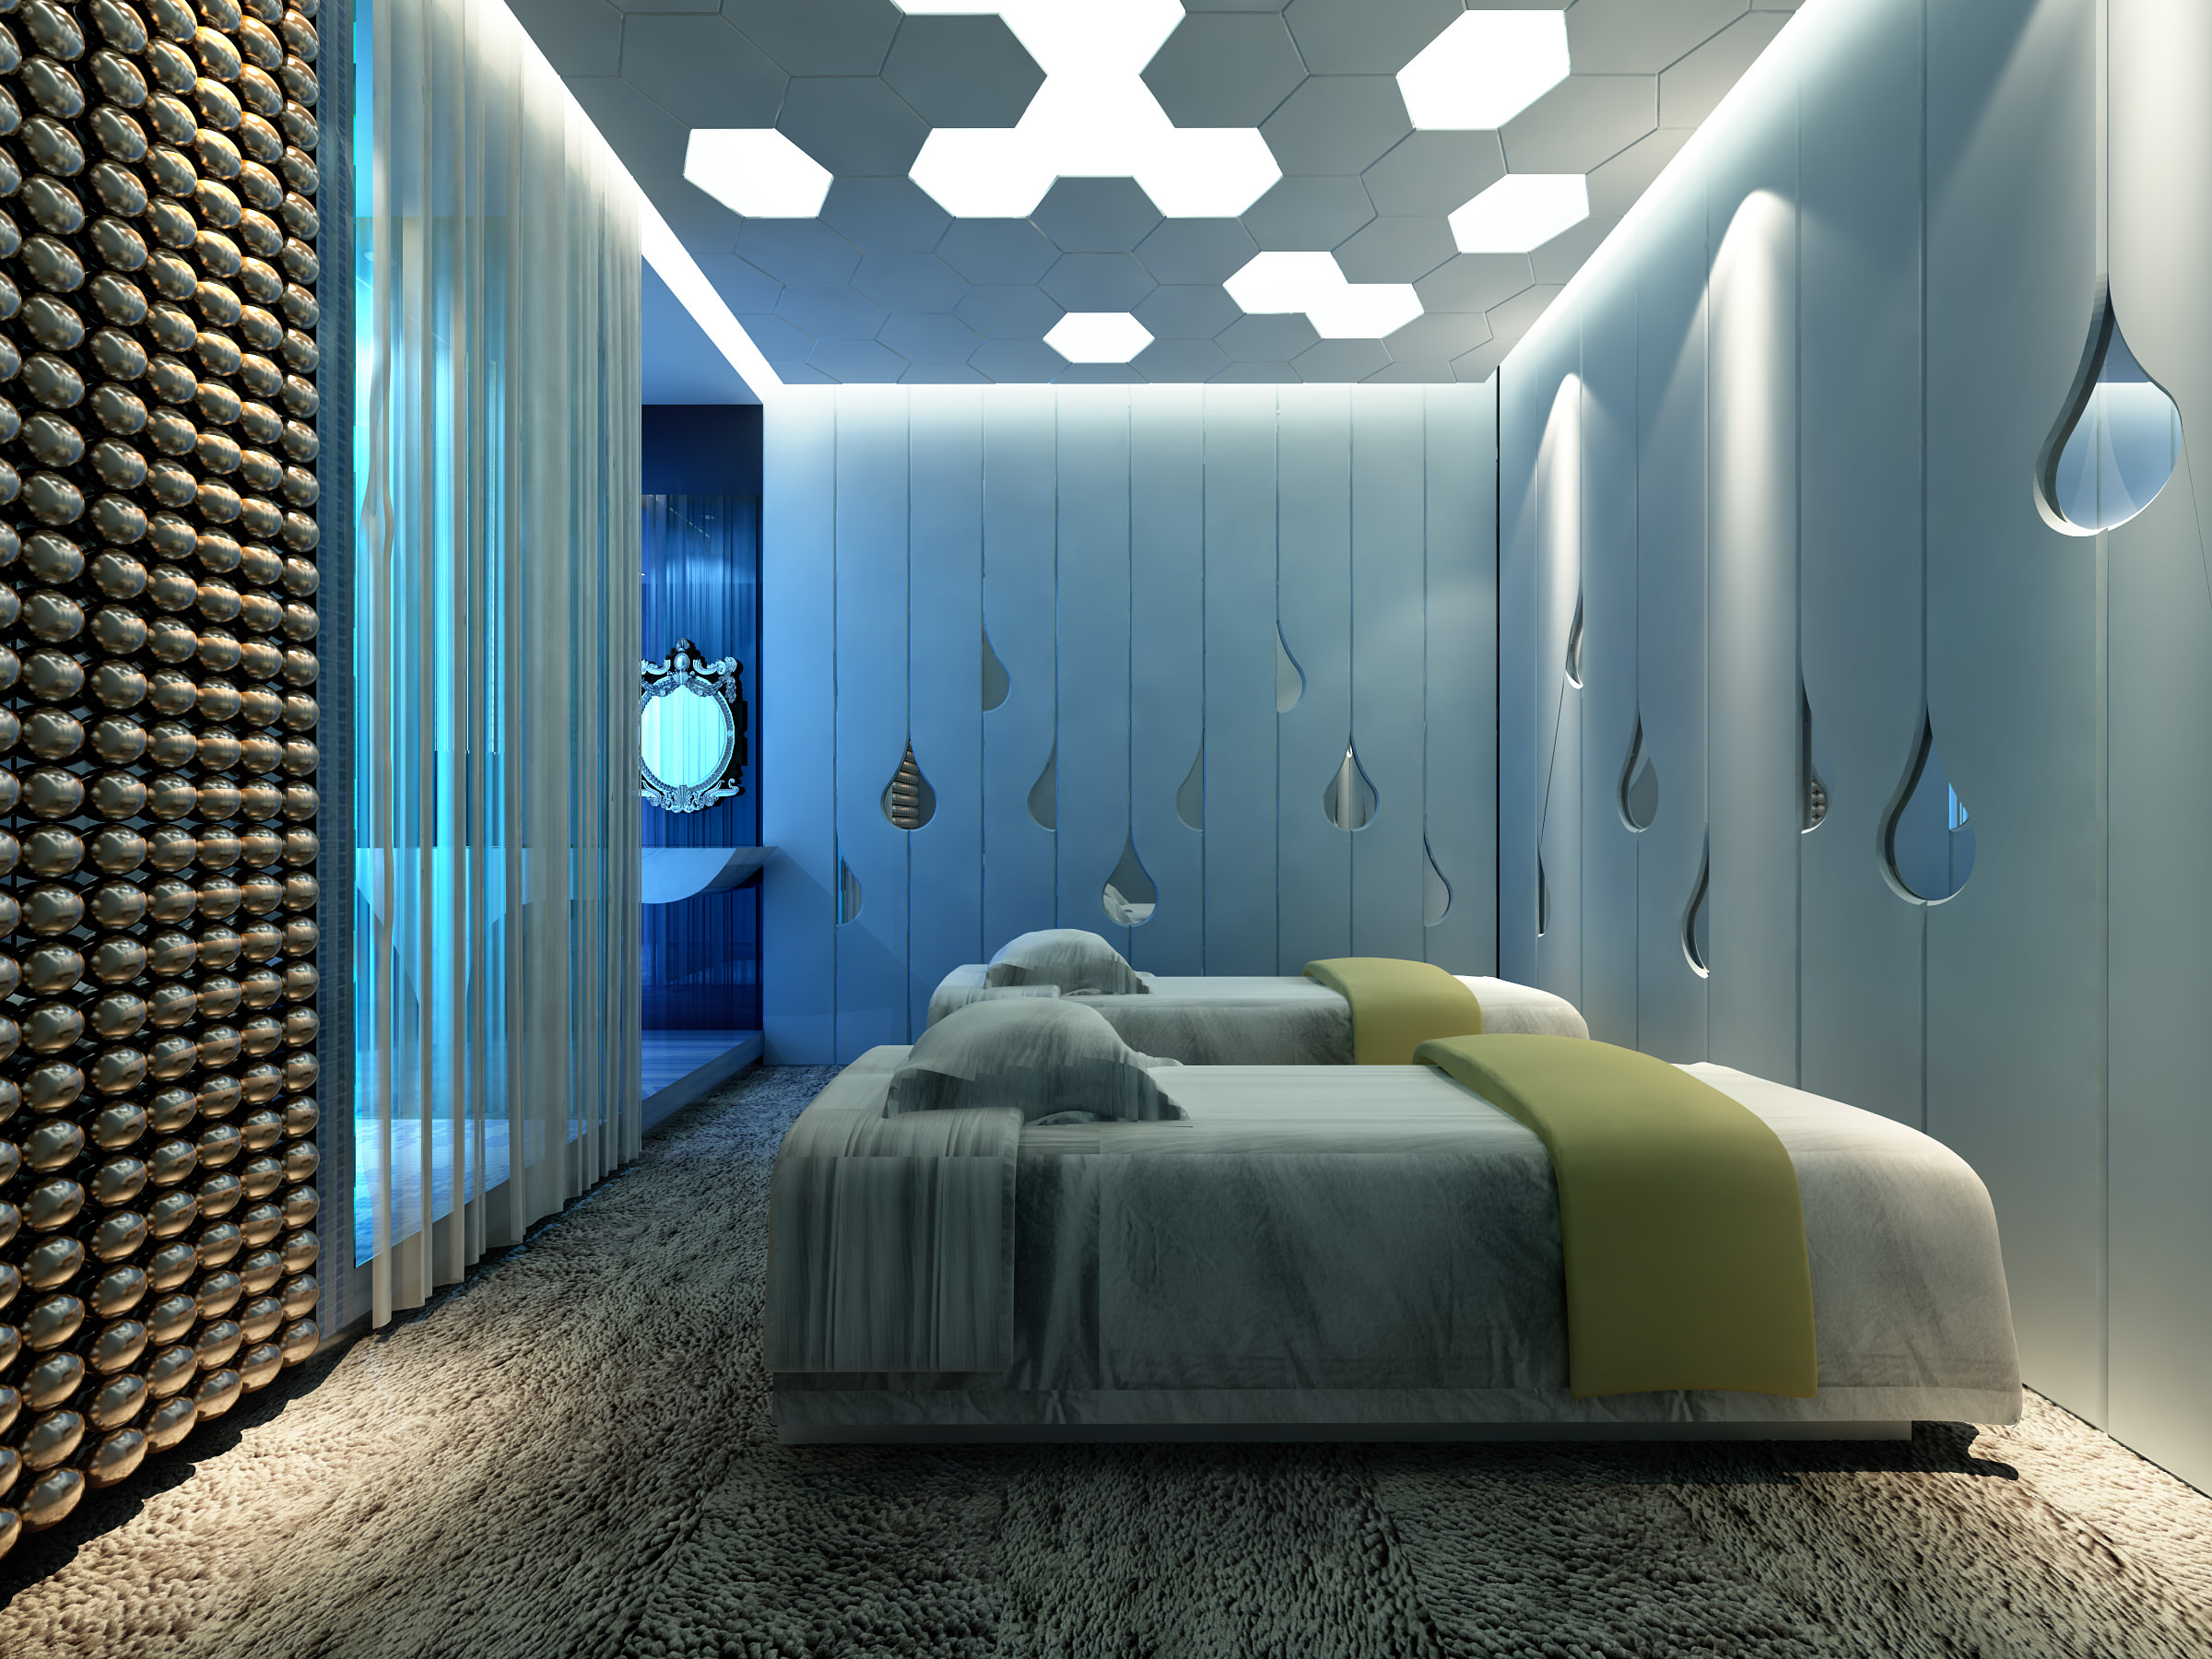 spa room with water drop wall decor 3d | cgtrader